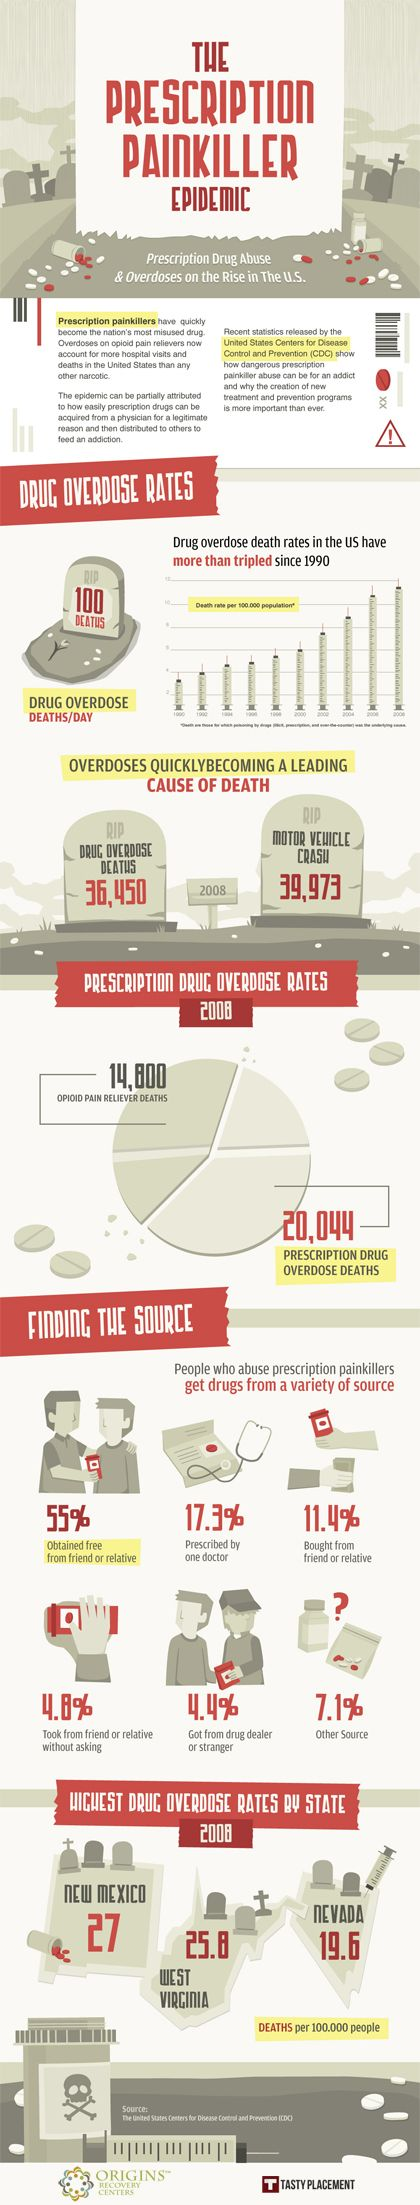 INFOGRAPHIC: The Prescription Painkiller Epidemic. According to the United States Centers for Disease Control and Prevention (CDC) prescription drugs have quickly become the nations most misused drug.